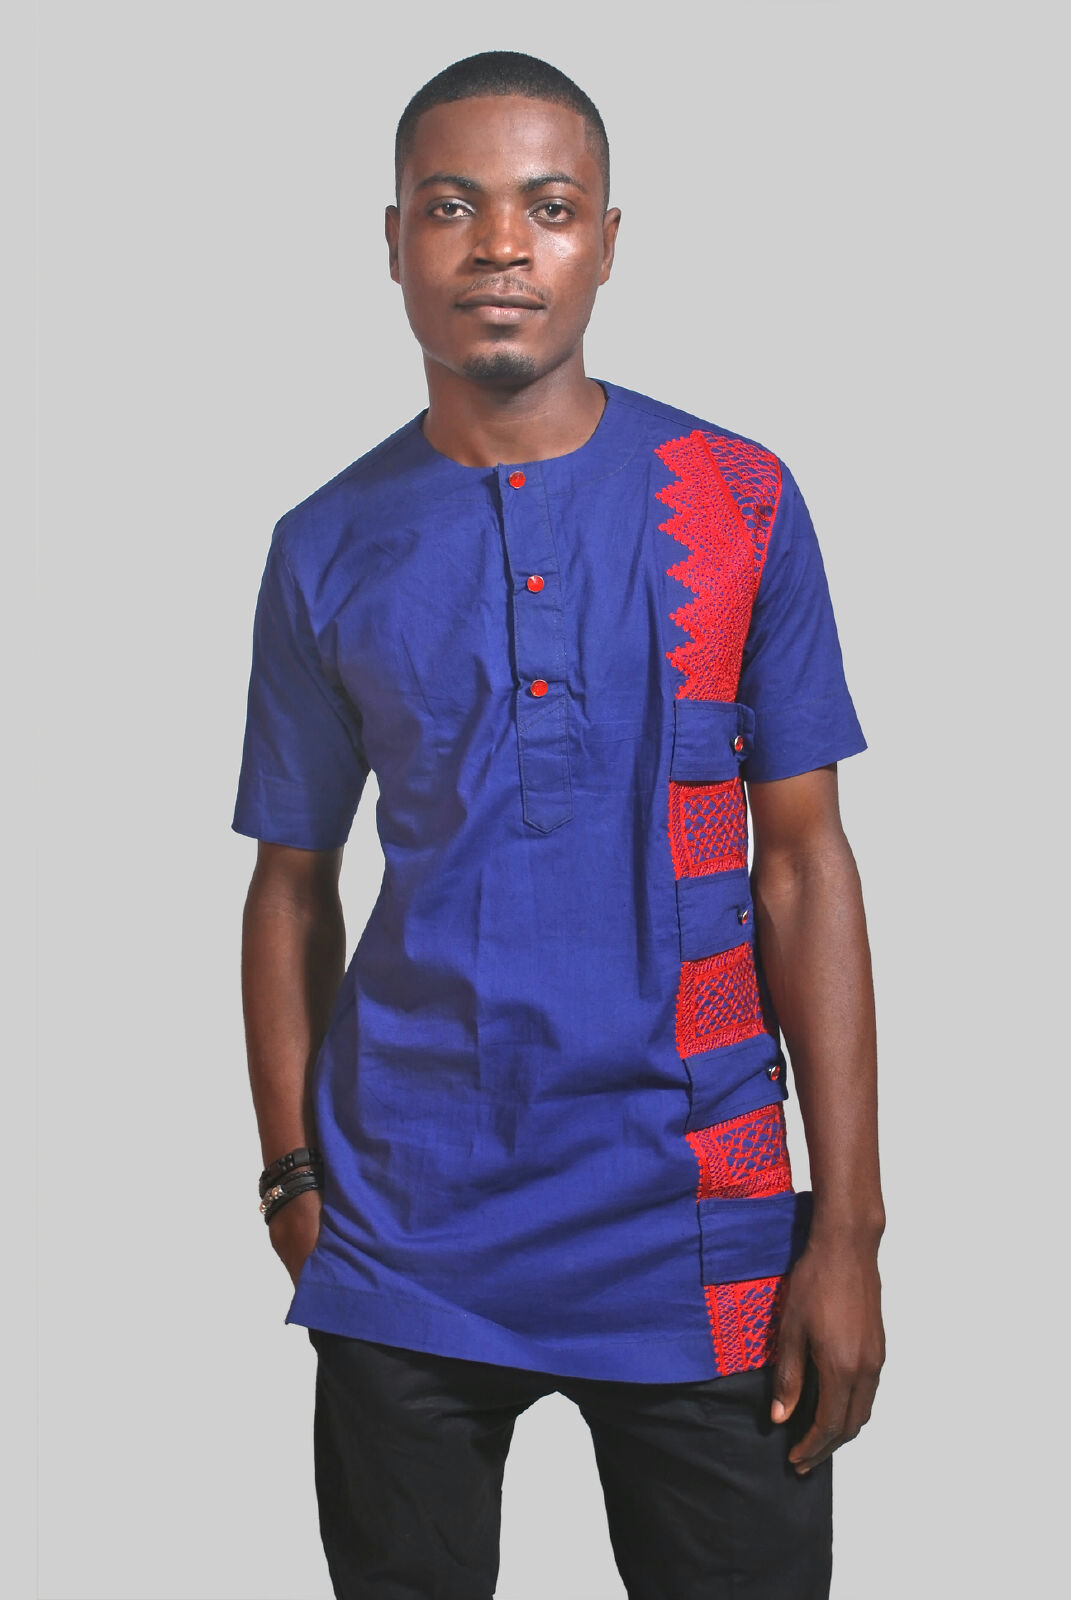 Classic Native Wear For Men At 8500 Only. - Fashion - Nigeria